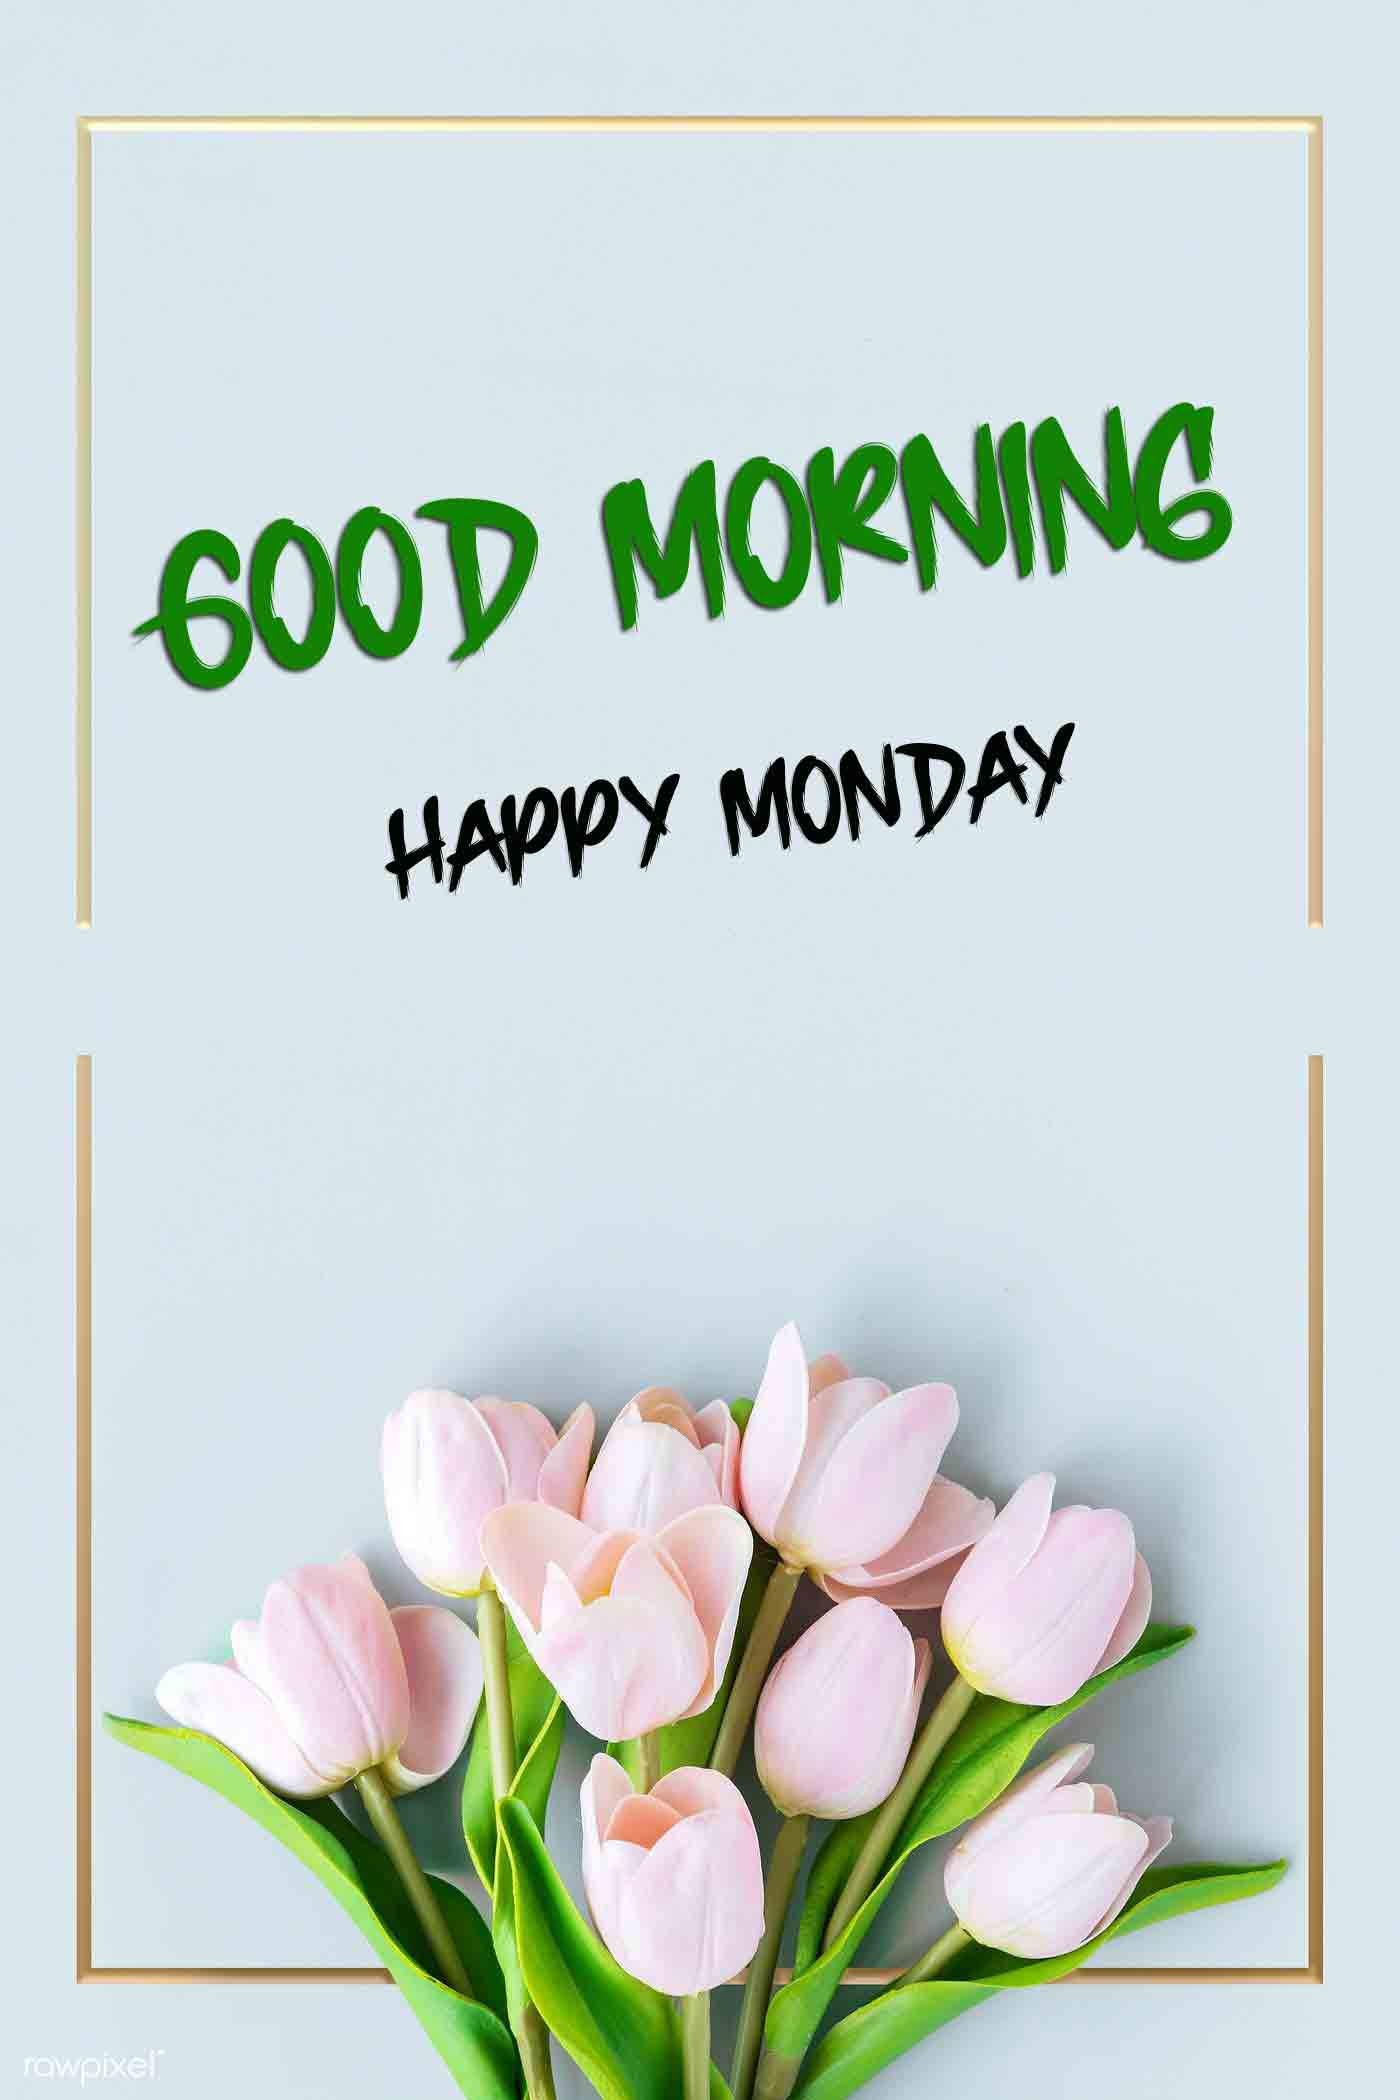 Beautiful Monday Good Morning Images pictures hd download